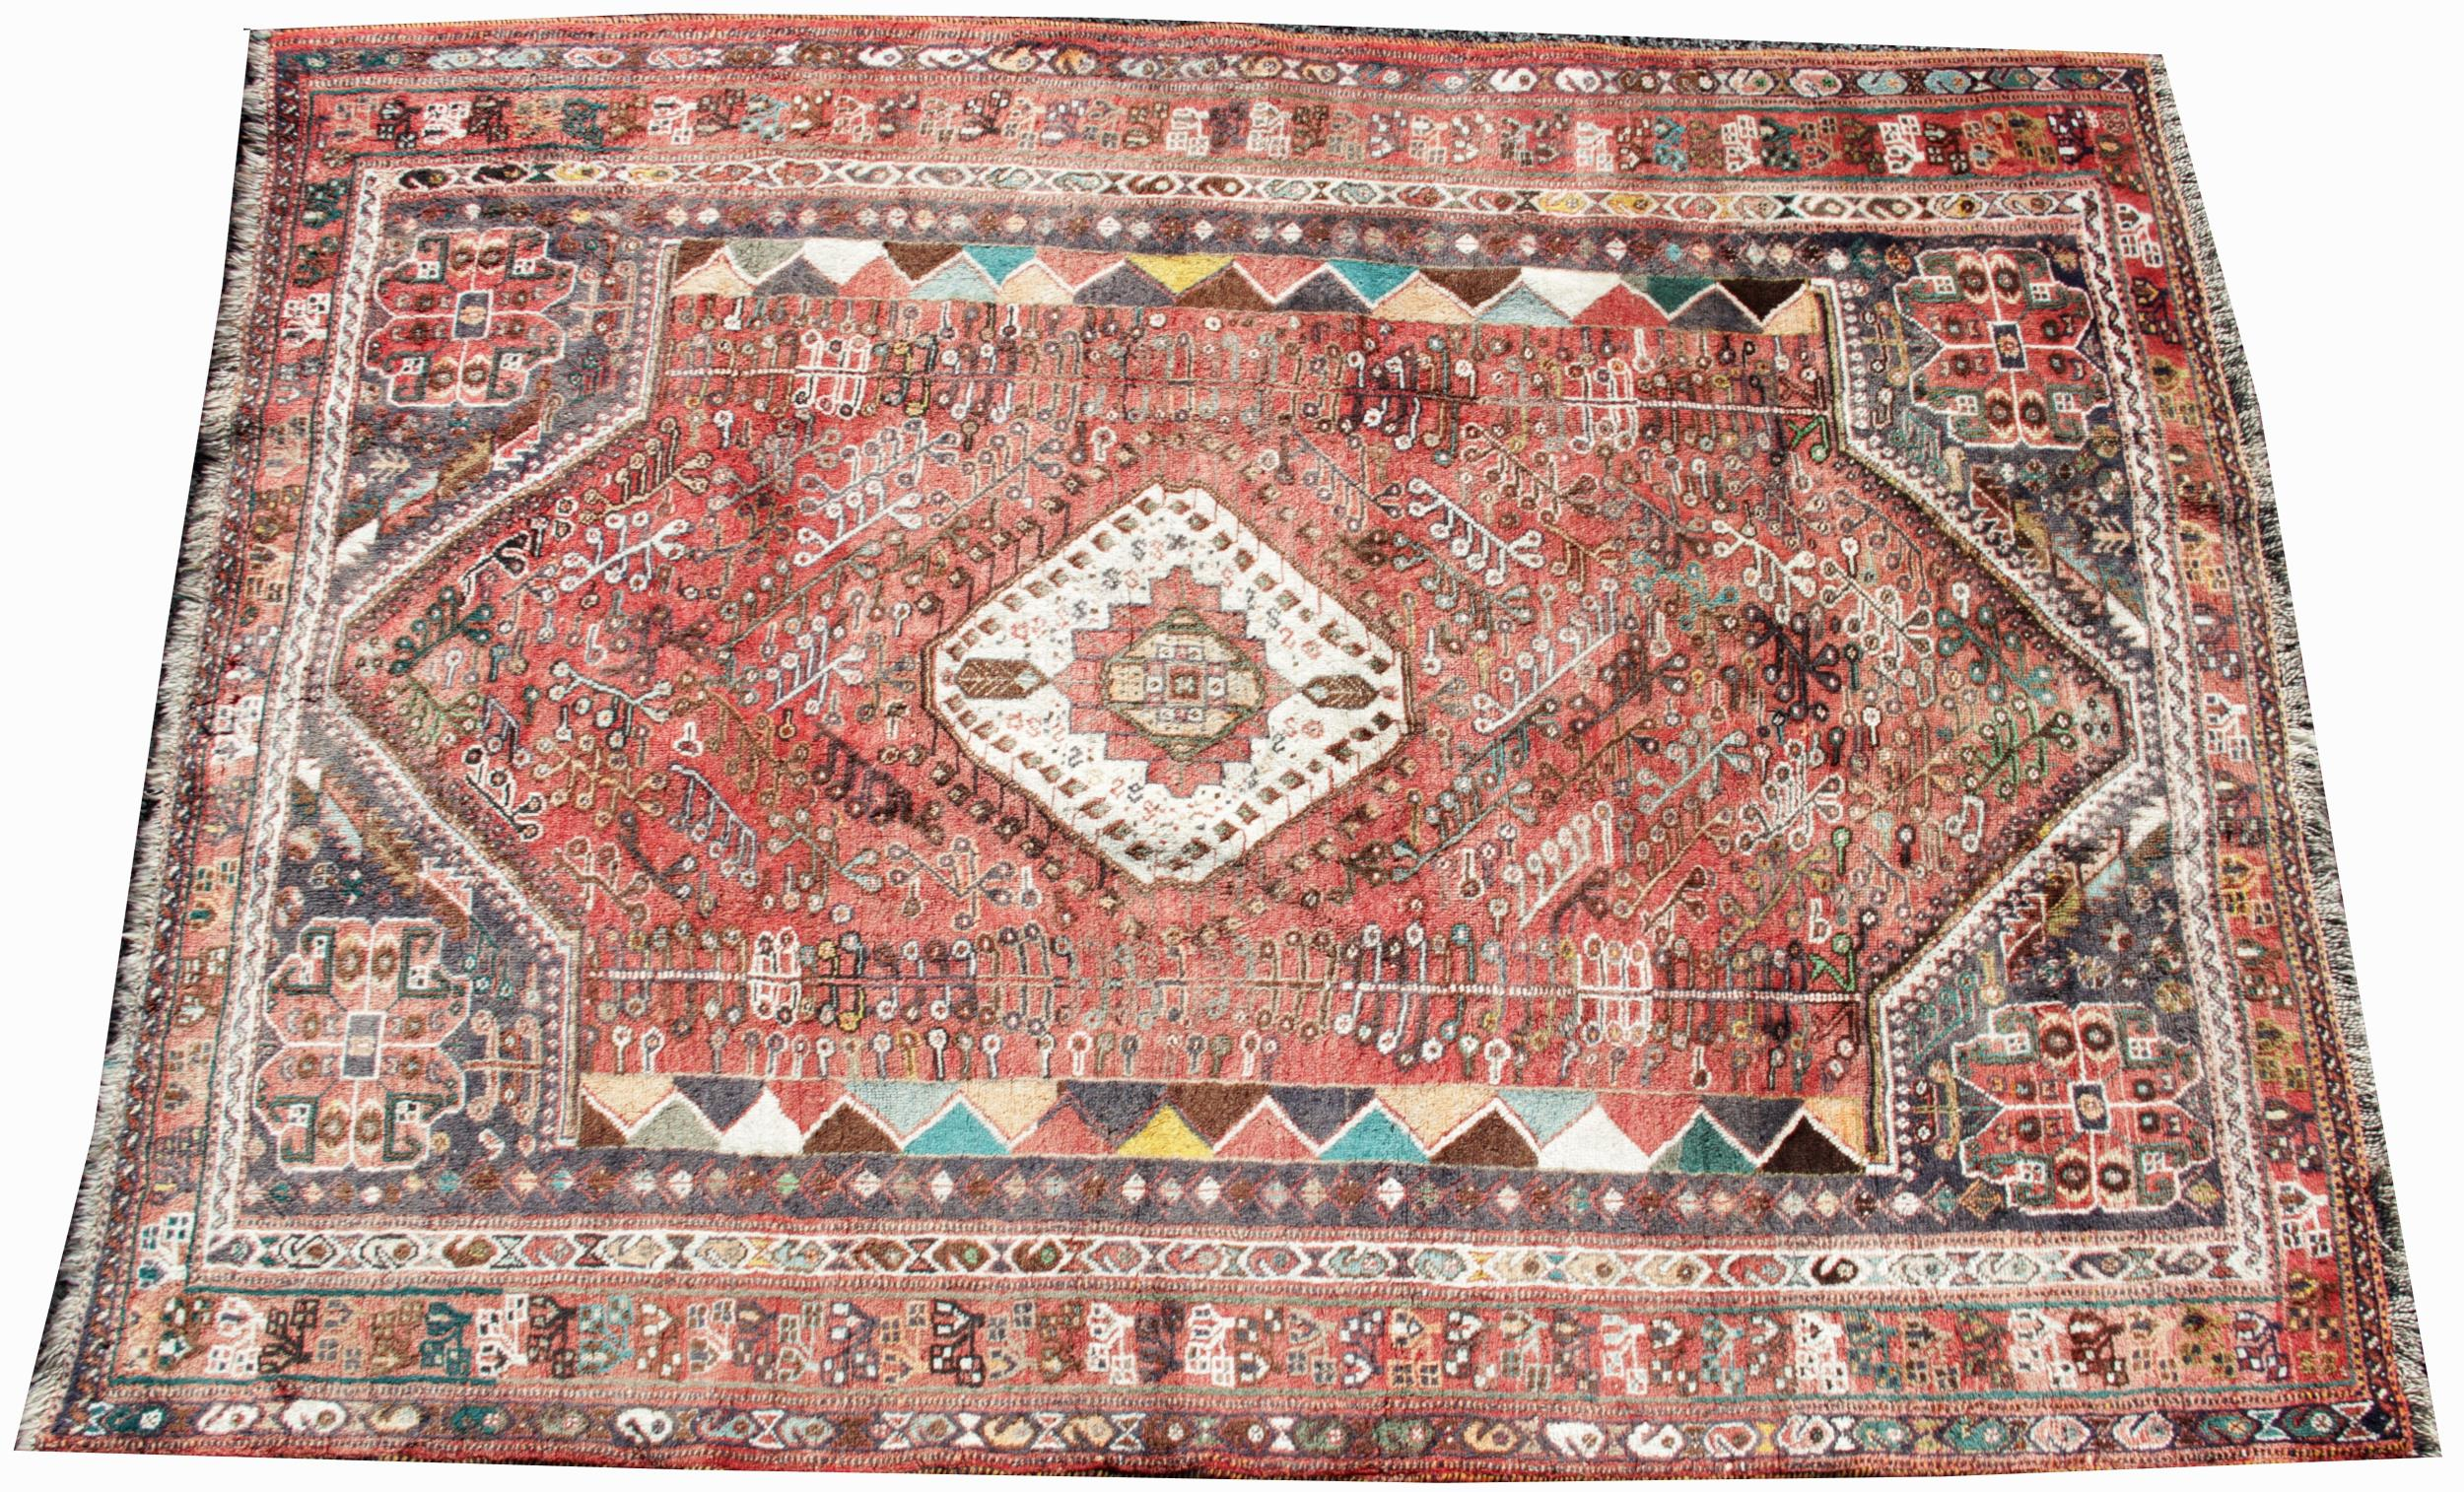 A Turkish wool rug, the central white lozenge shaped medallion upon a red ground, enclosed by red